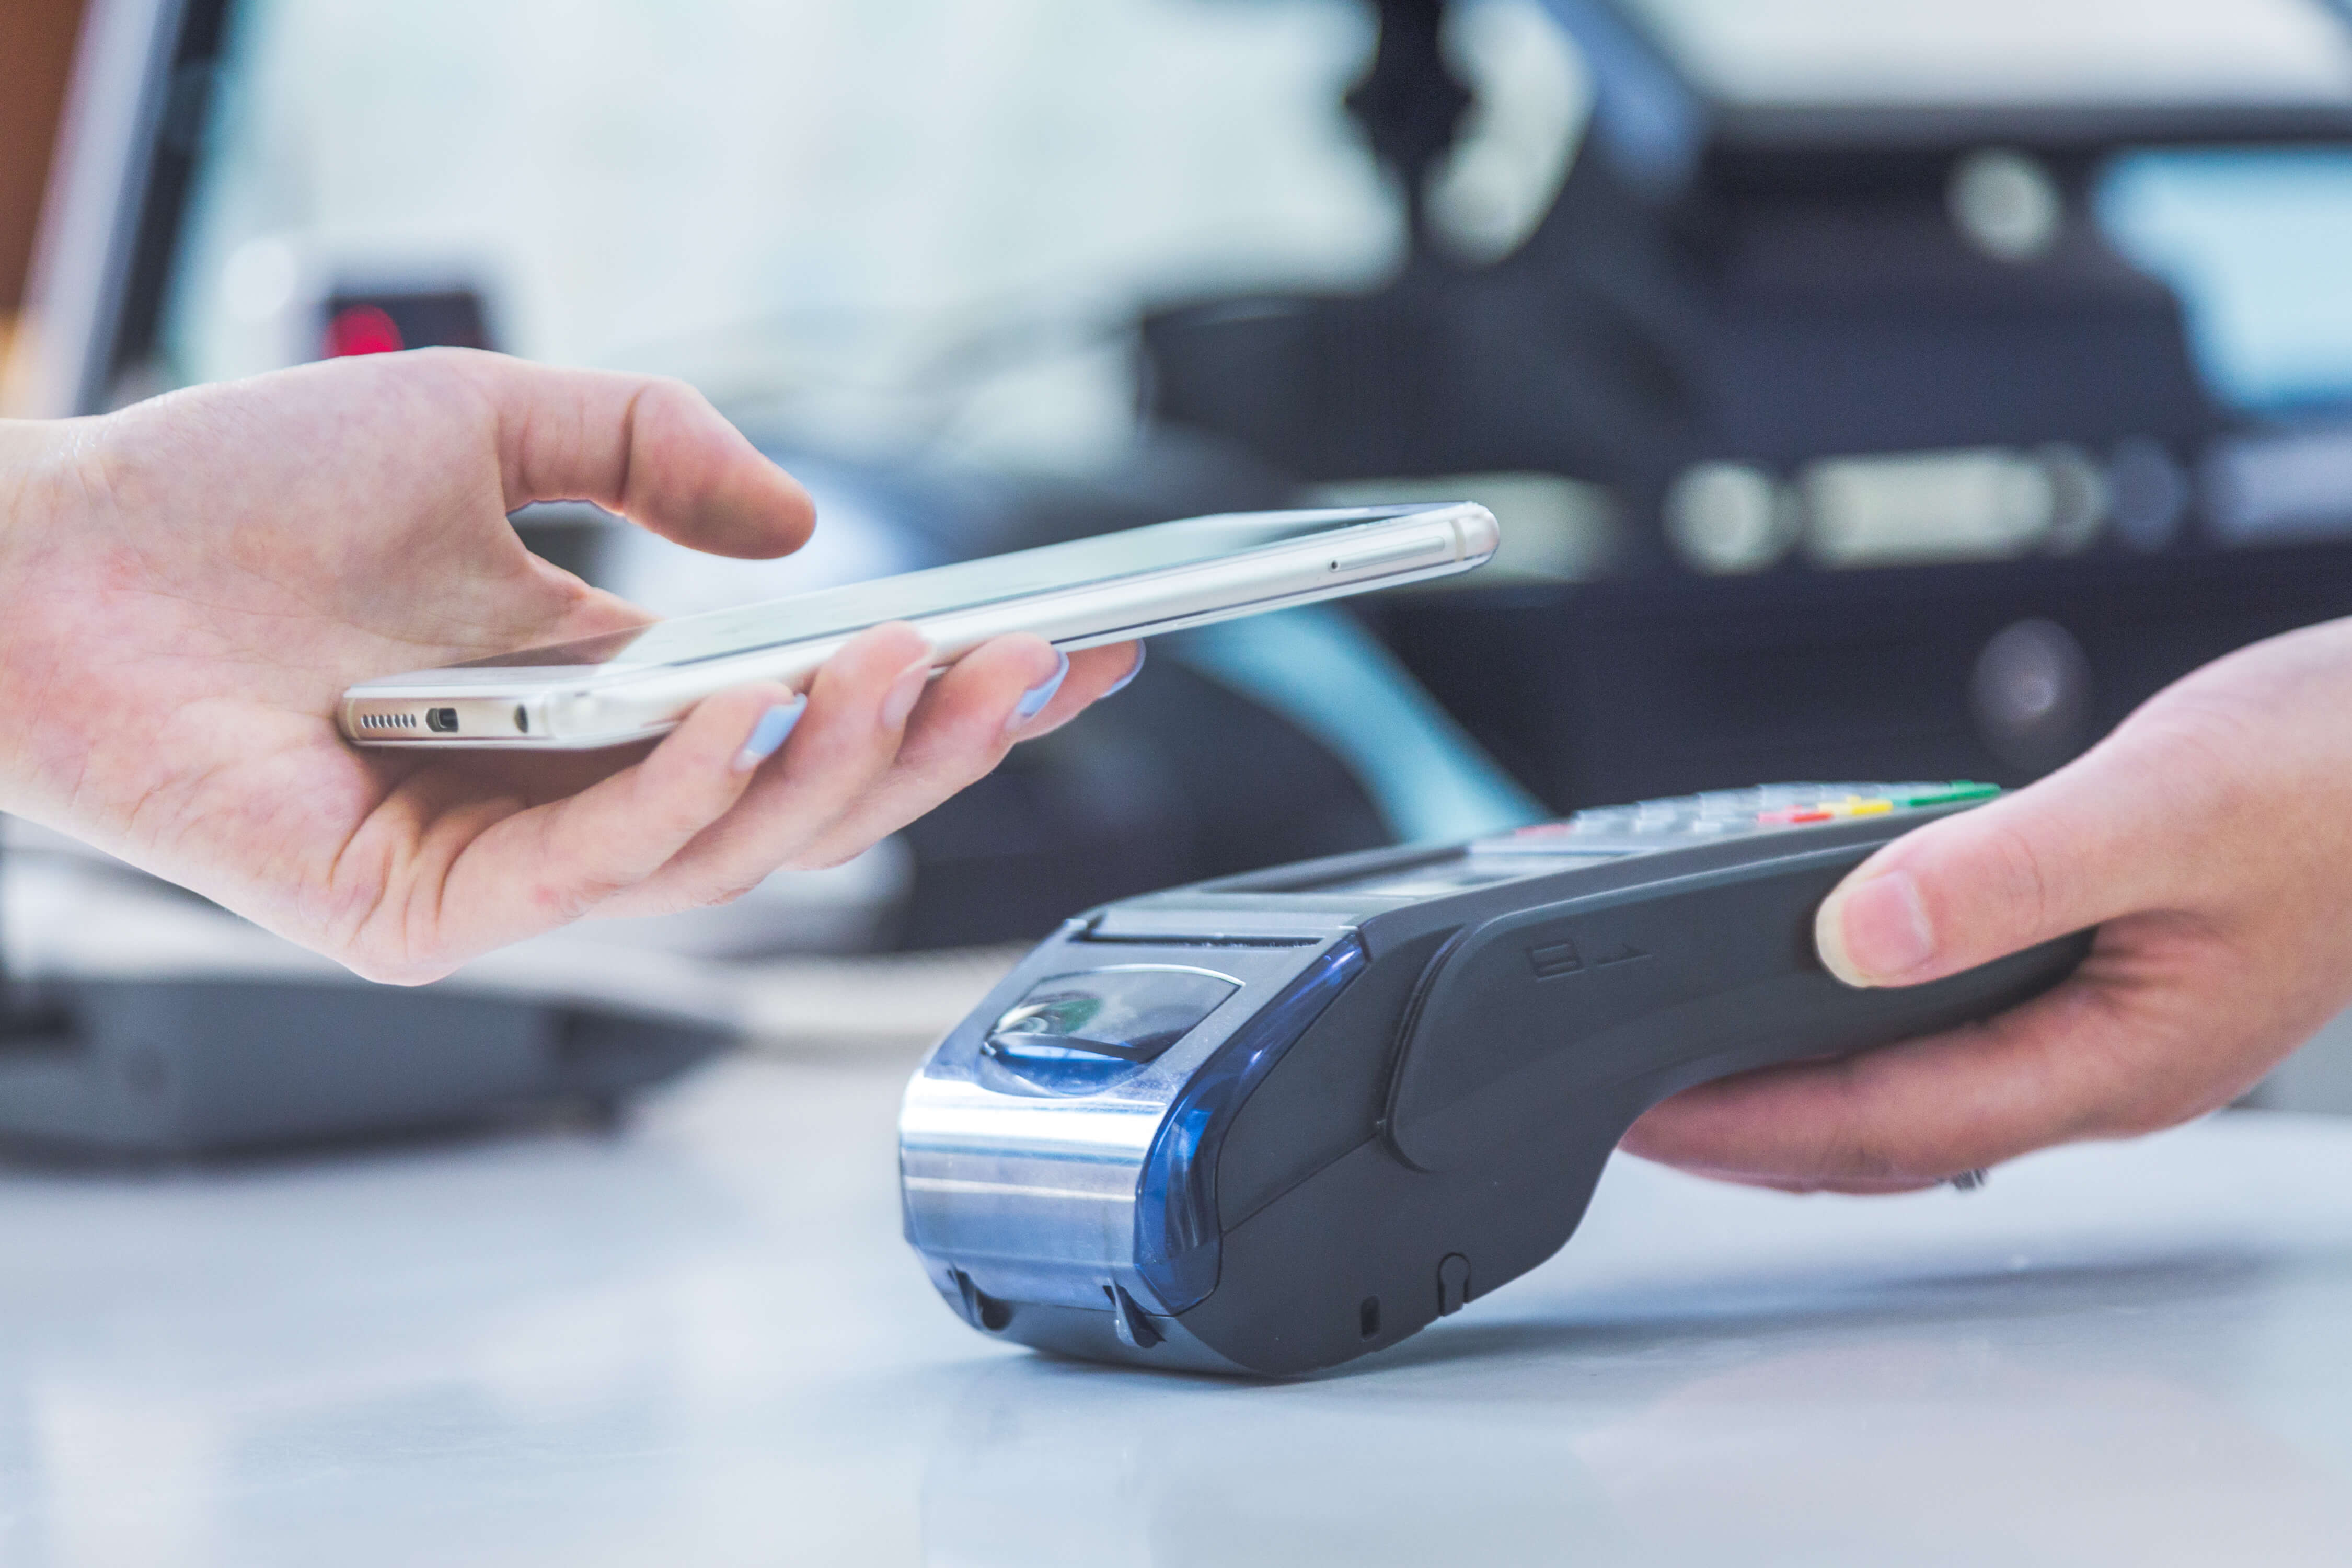 Mobile payments are on the up and the future seems bright. Let's have a look at where they are heading but also the challenges that lay ahead.